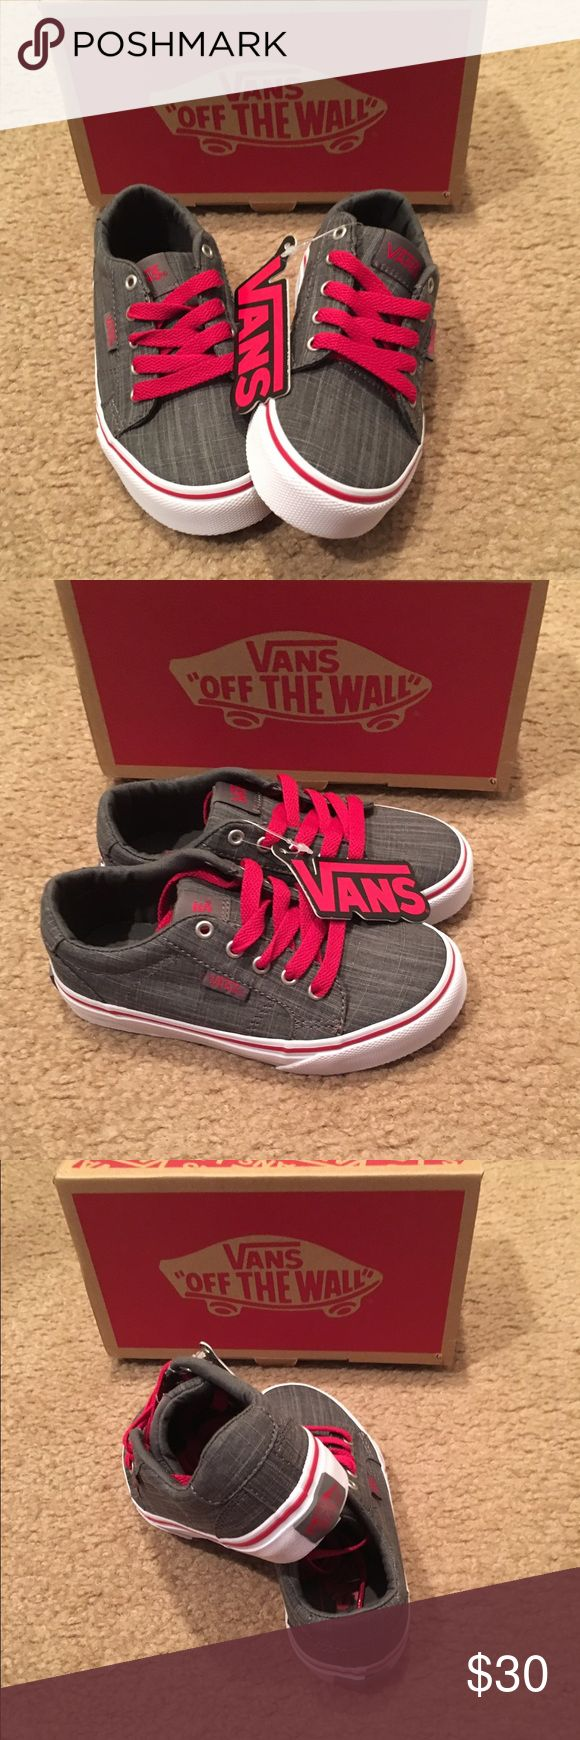 Boys Bishop Vans skate shoes New in box. Pewter/red. Toddler size 10.5 Vans Shoes Sneakers